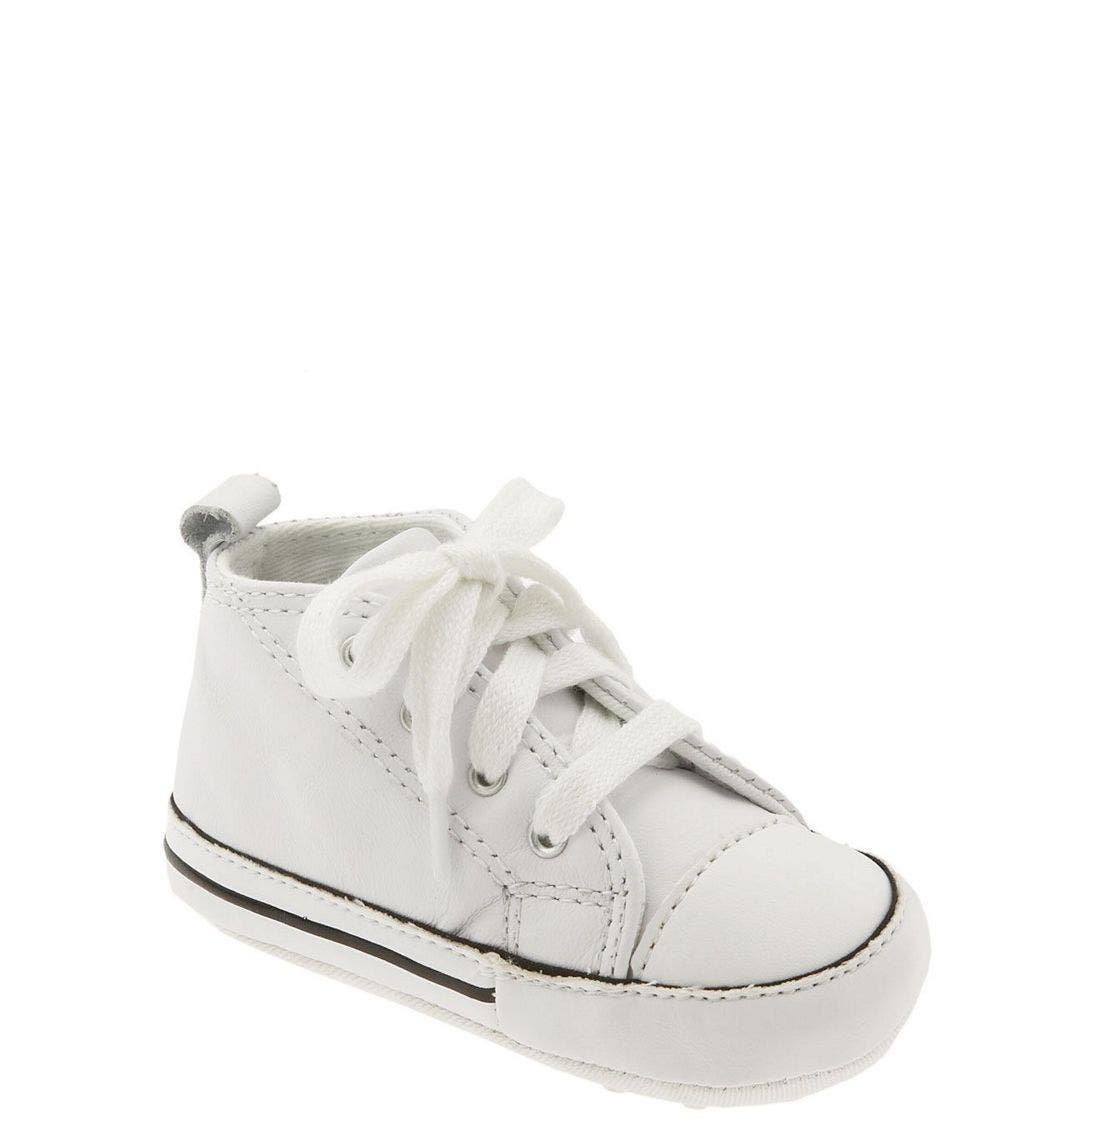 converse shoes for girls black and white. converse chuck taylor® crib sneaker (baby). black; navy; pink; white shoes for girls black and white